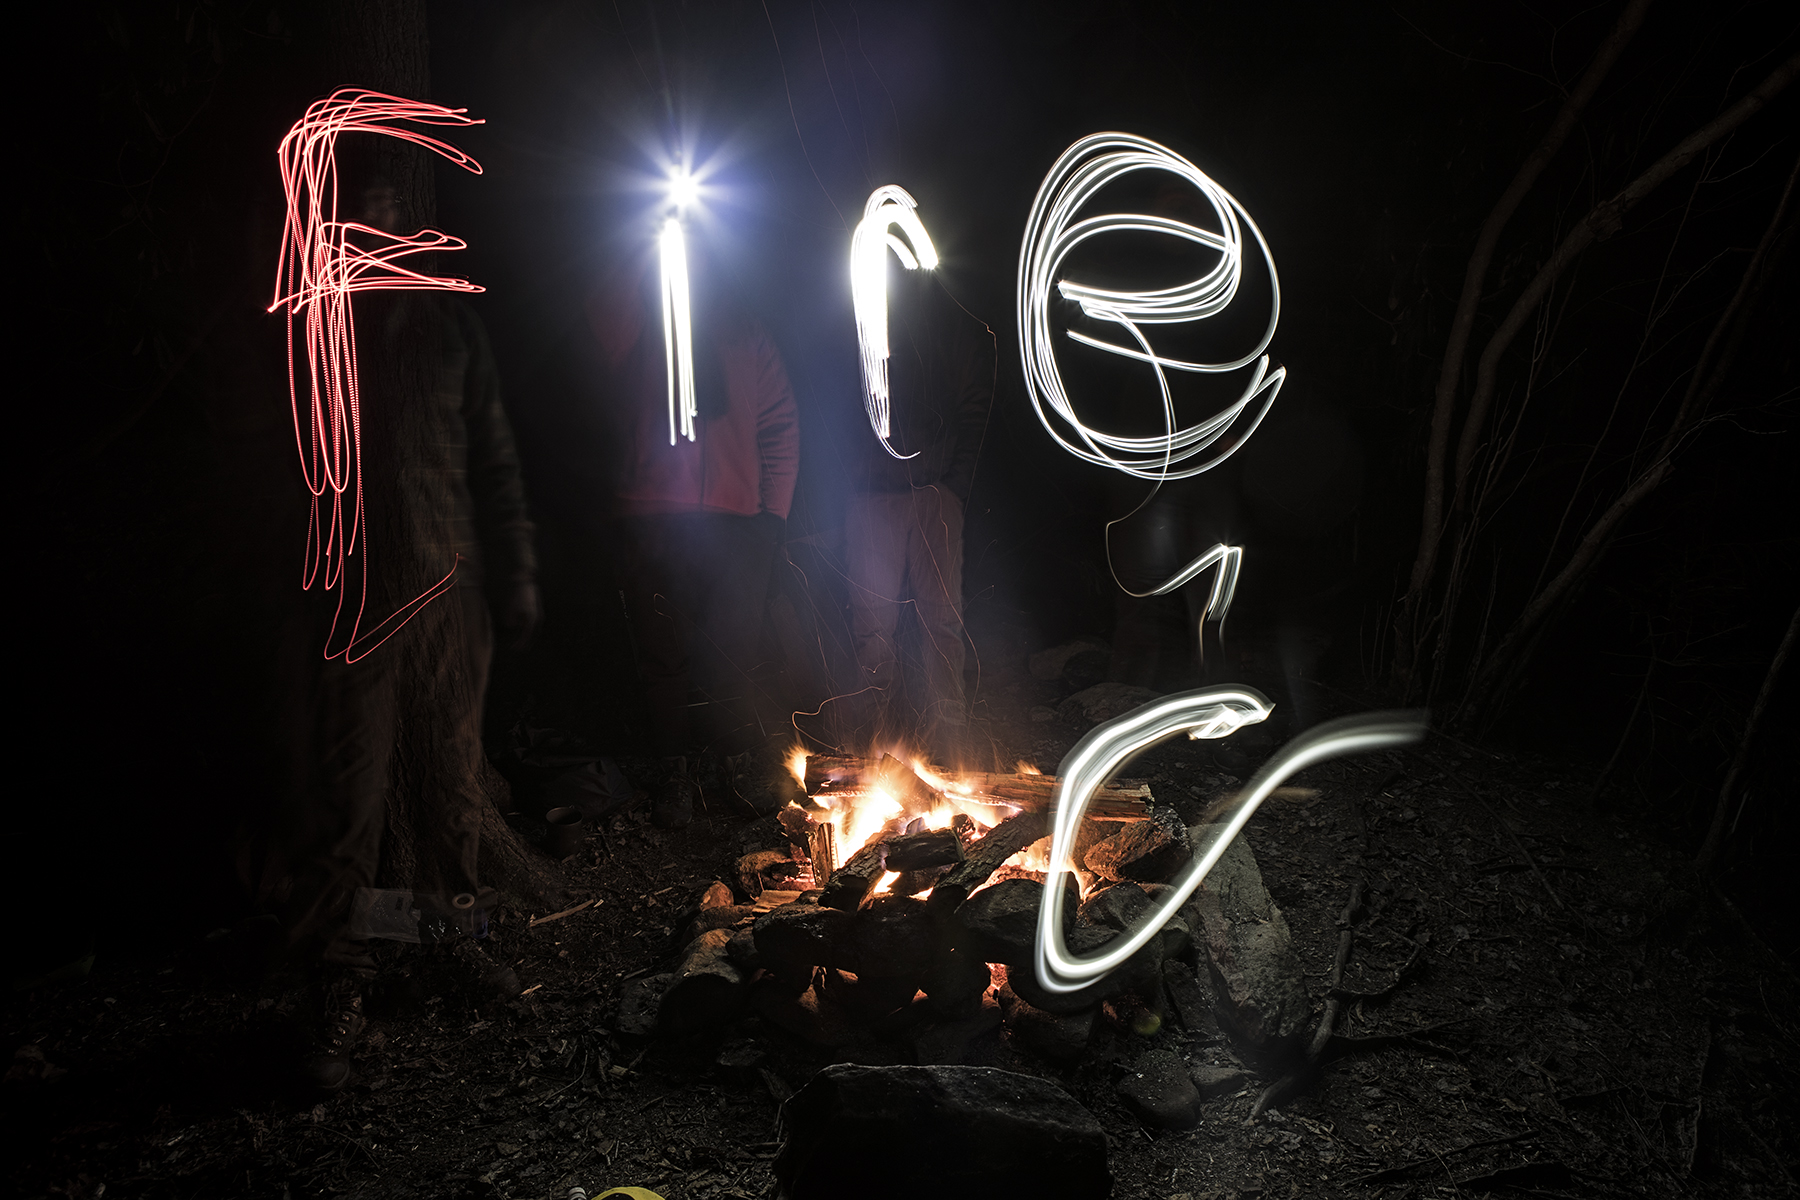 Late night light painting by the fire.